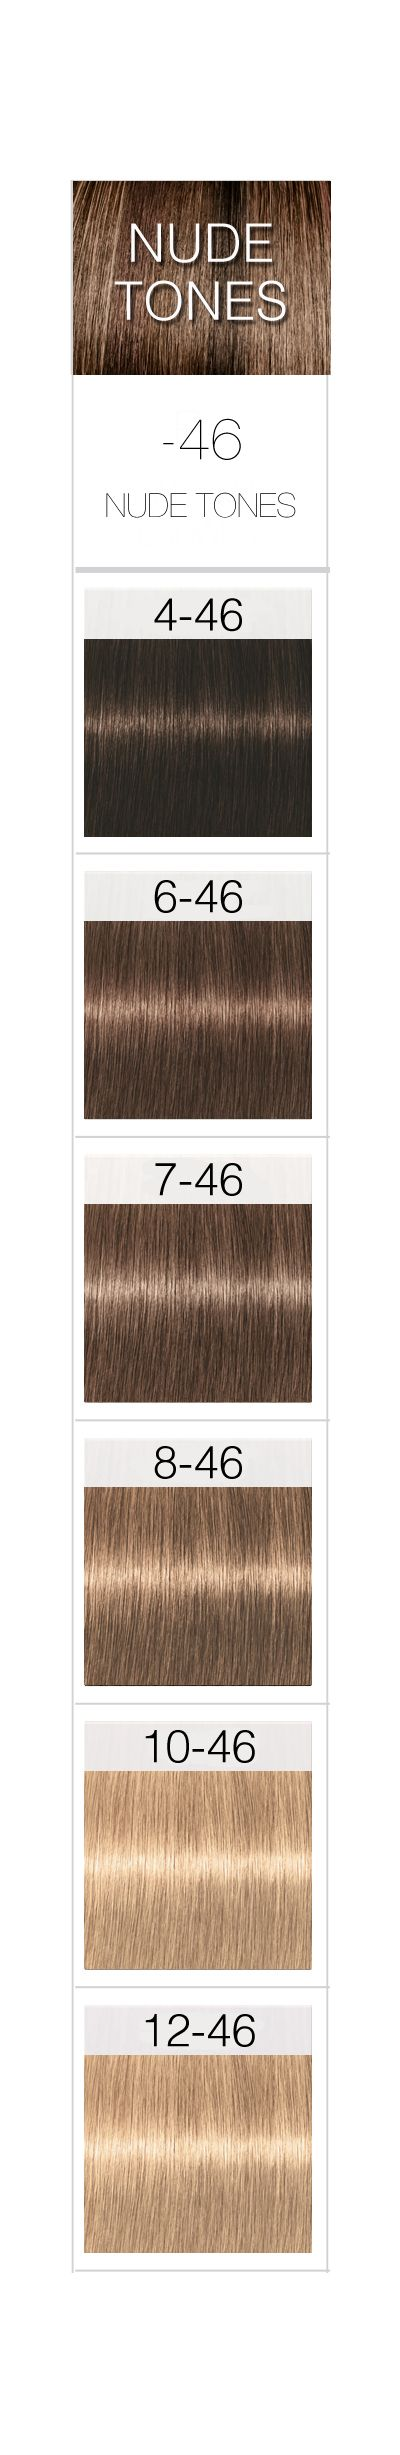 Nuancier Couleur Chocolat avec schwarzkopf professional igora royal permanent color creme nude